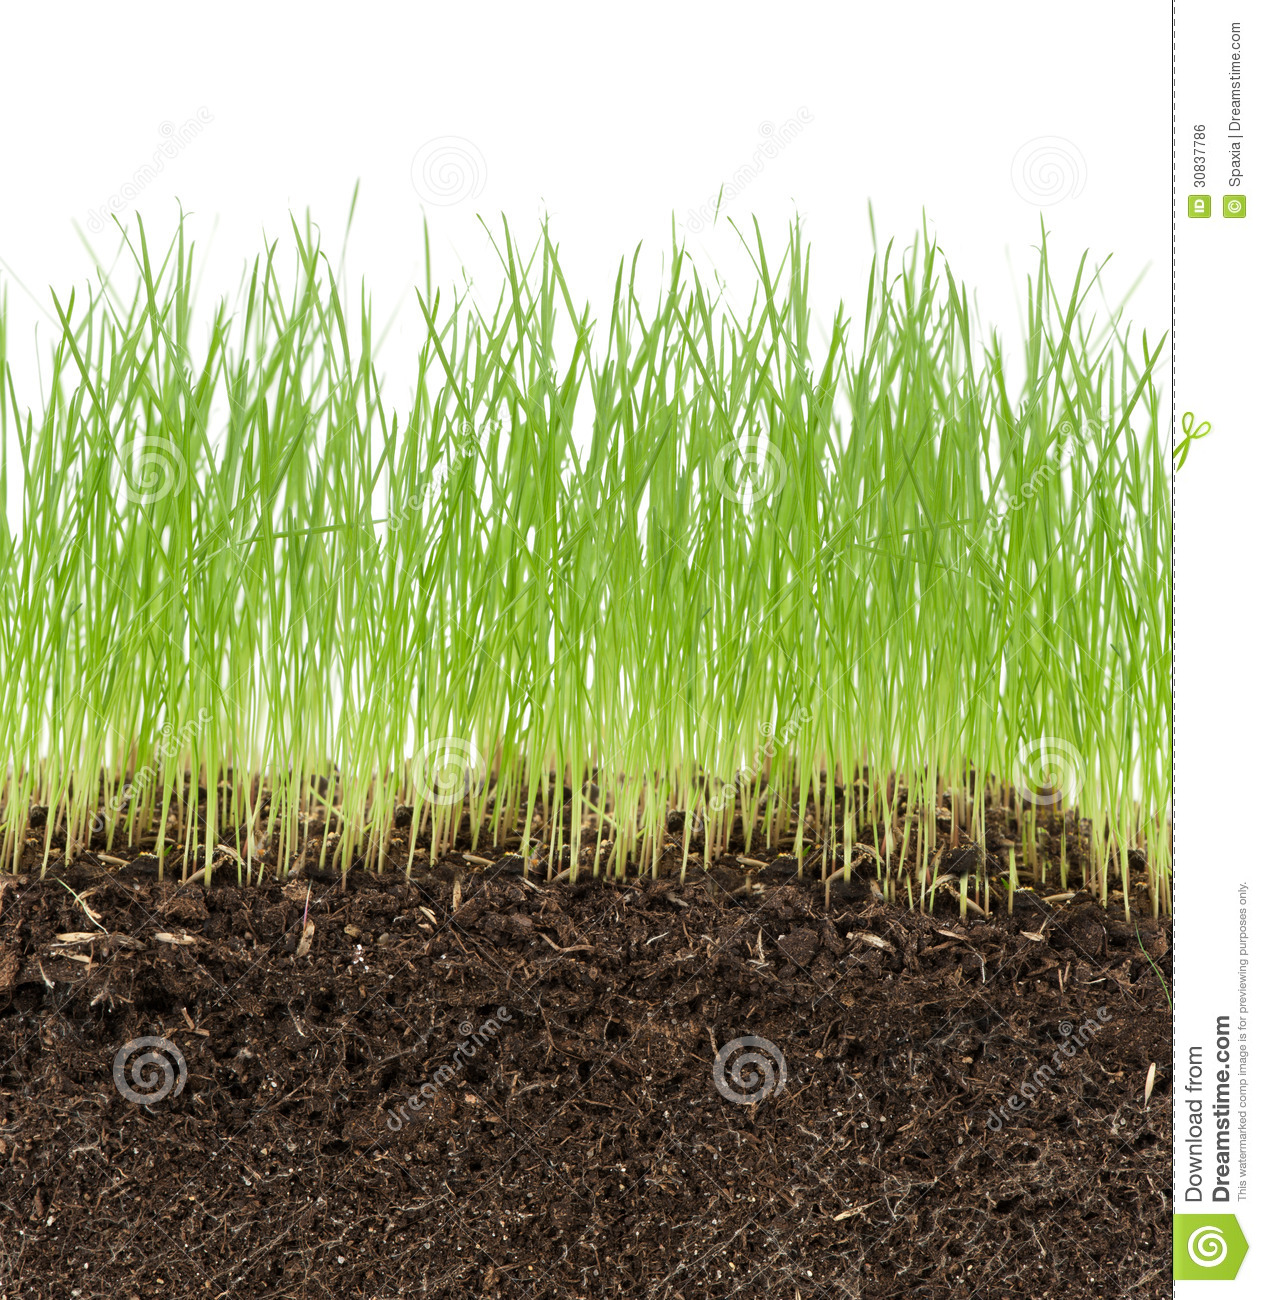 Green grass in soil stock photo image of season field for Soil and green